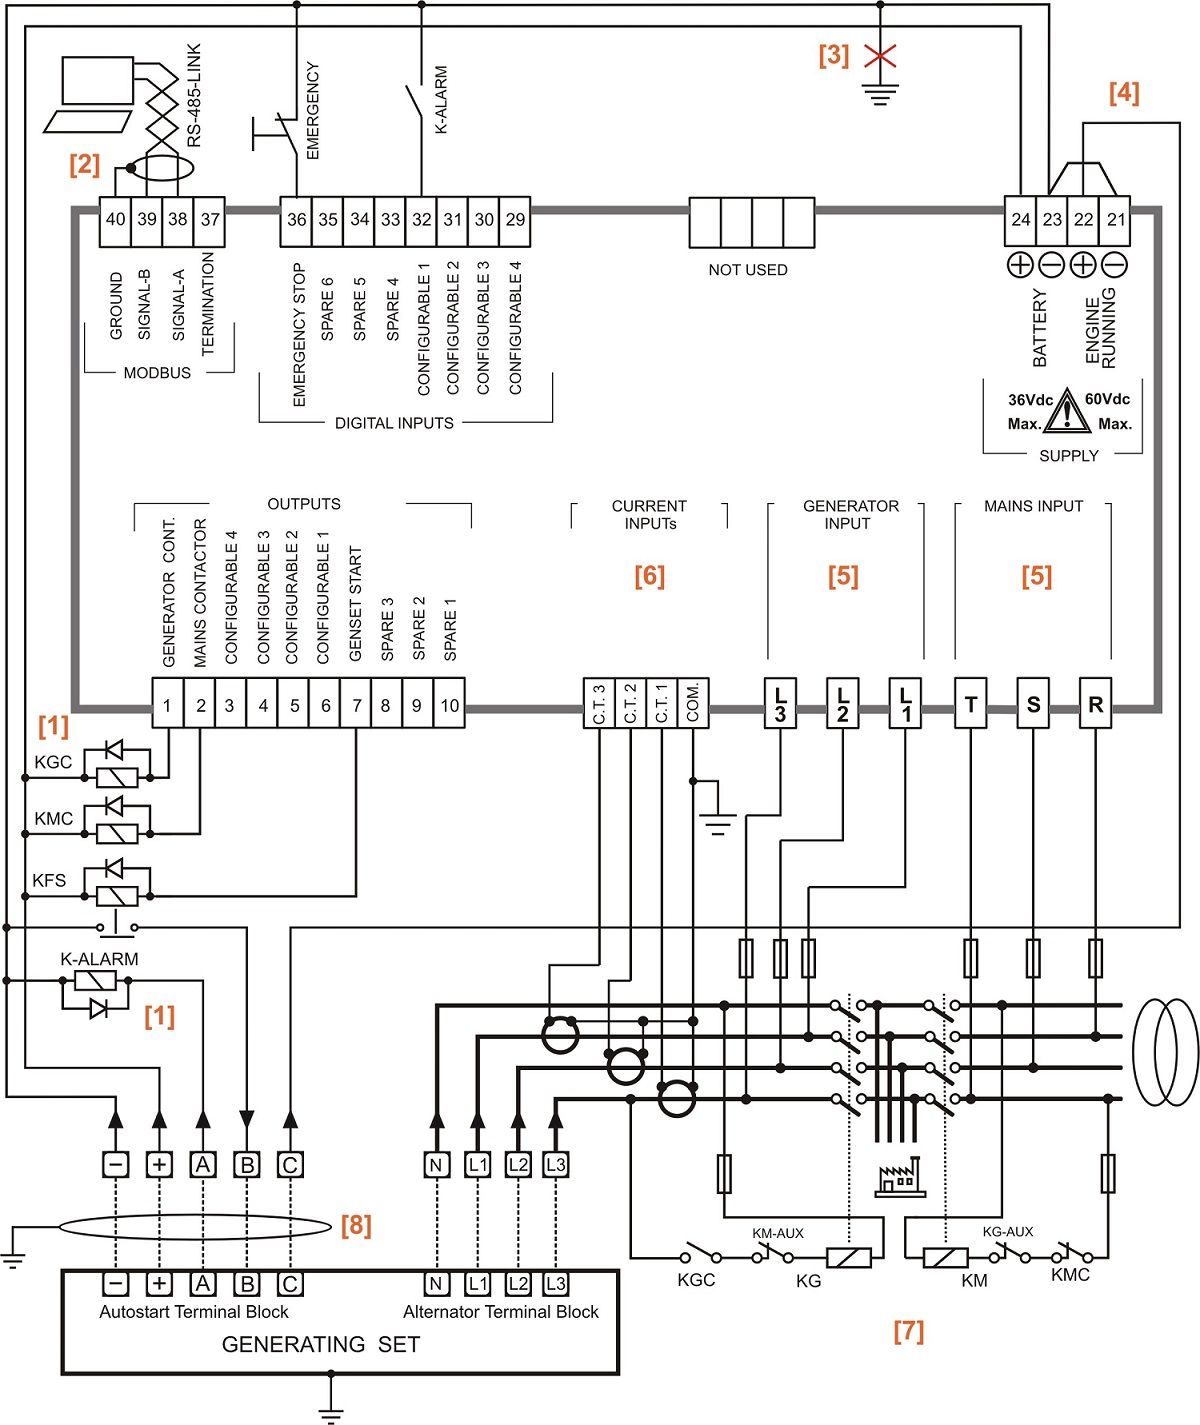 automatic changeover switch circuit diagram using contactors  u2013 automatismes pour groupes